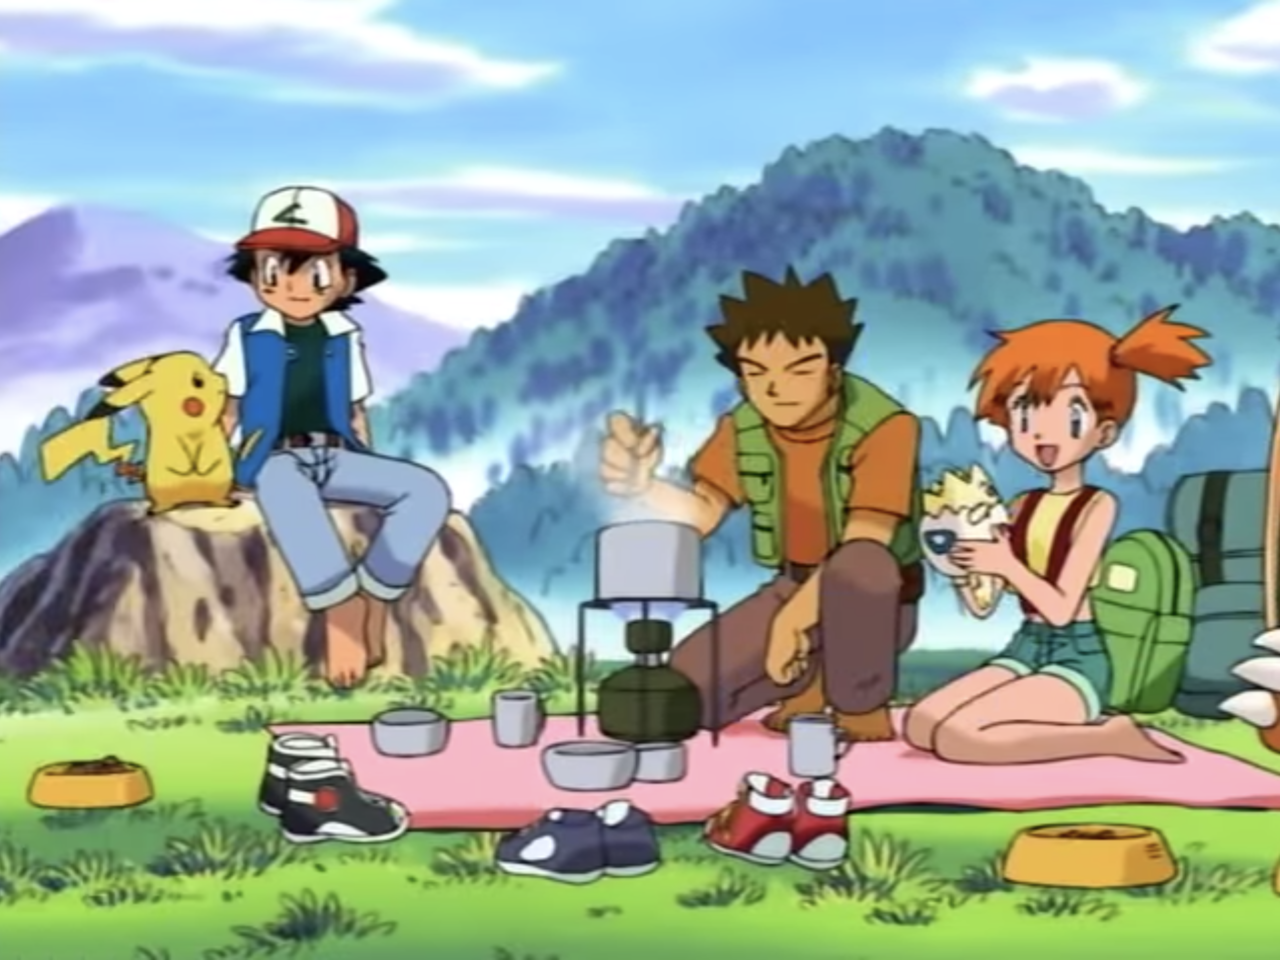 Ash and Pikachu are sitting nearby while Misty is entertains Togepi and Brock cooks a warm meal